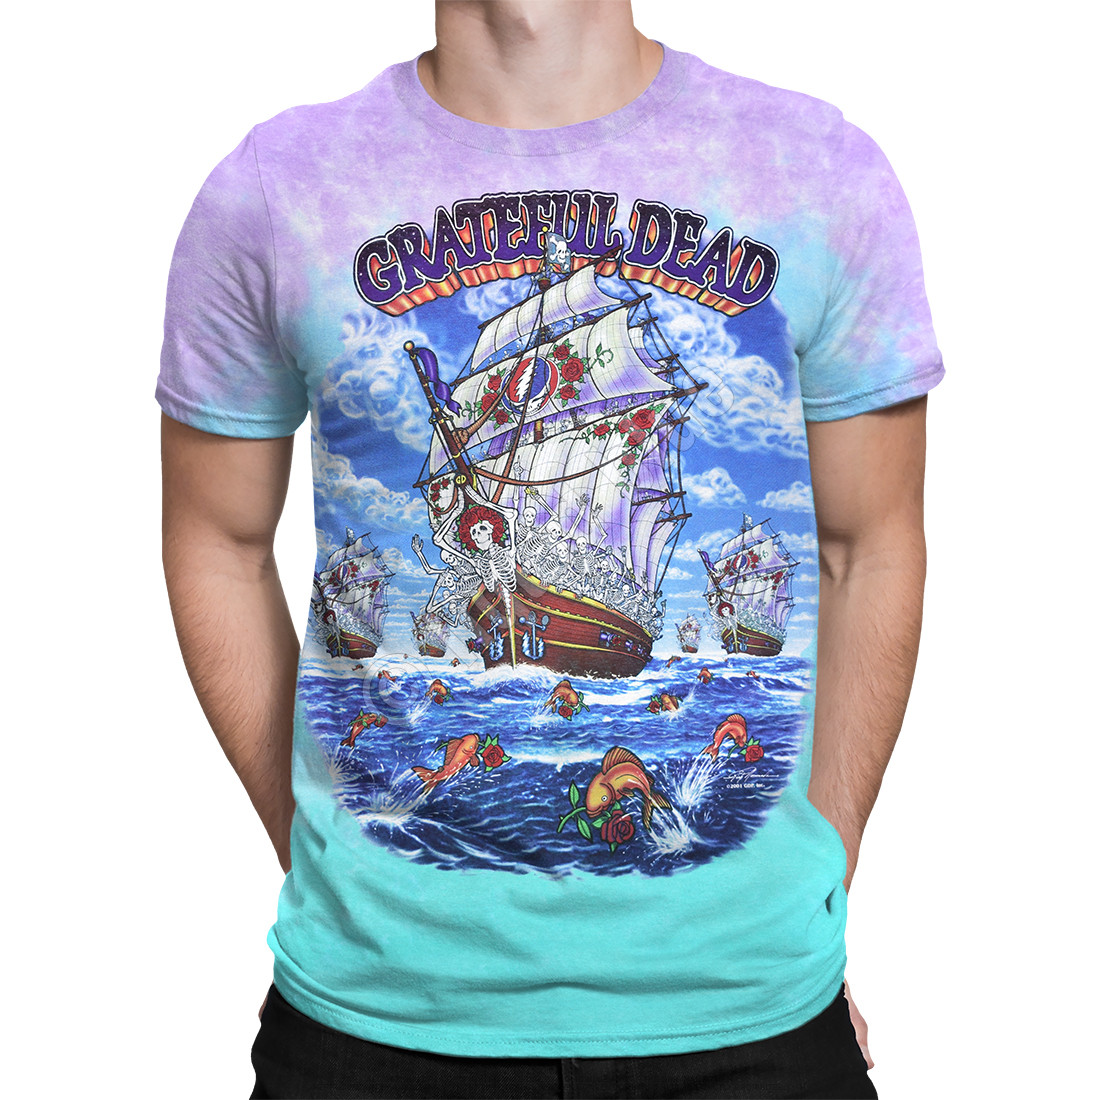 Grateful Dead Ship Of Fools Tie-Dye T-Shirt Tee Liquid Blue 13c081ecf